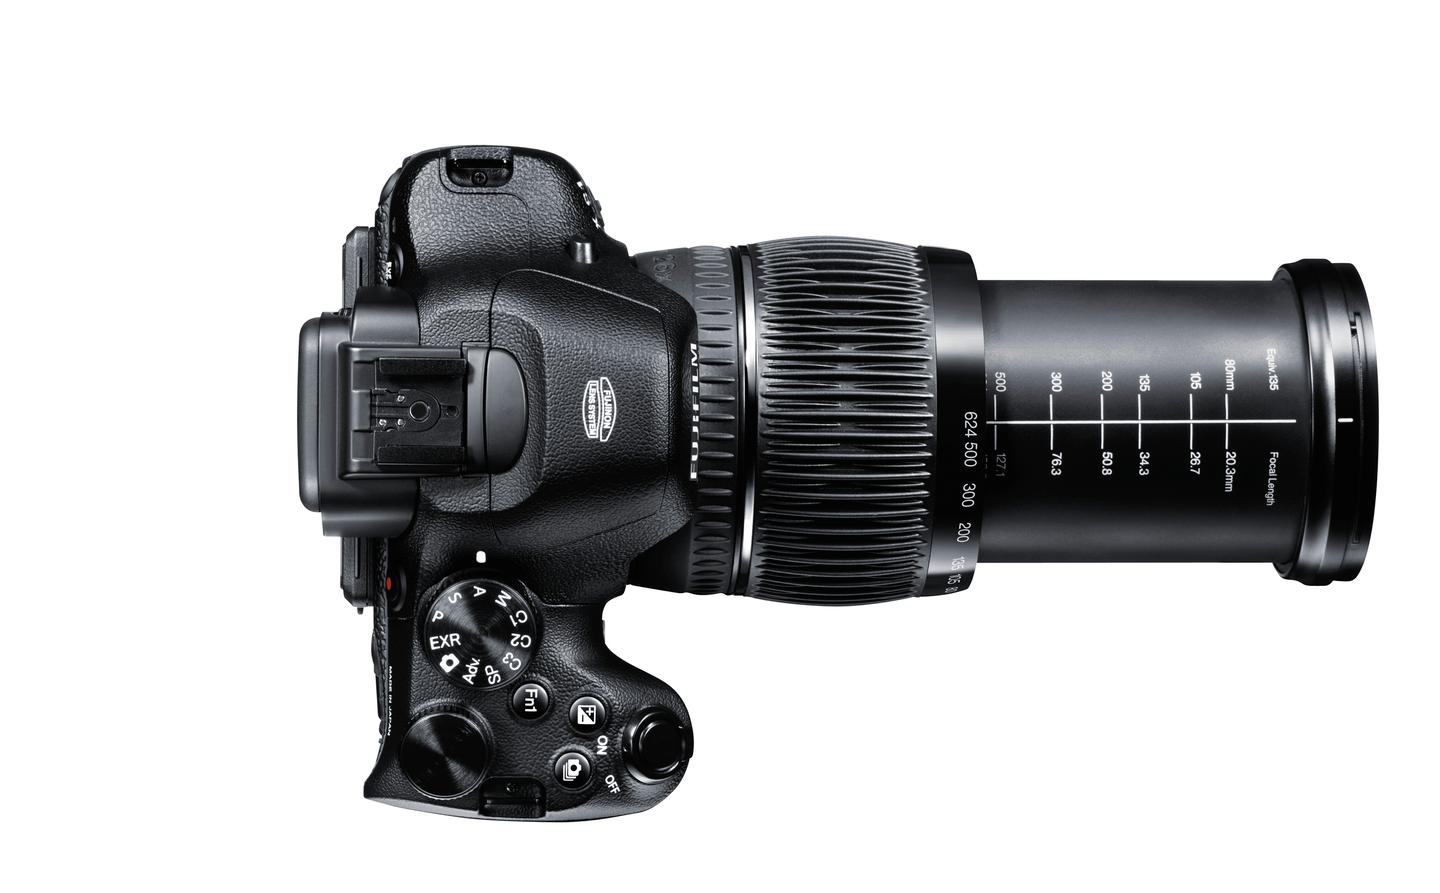 Top view of the new X-S1 superzoom - featuring PASM exposure control, hot shoe mount and a 26x optical zoom lens